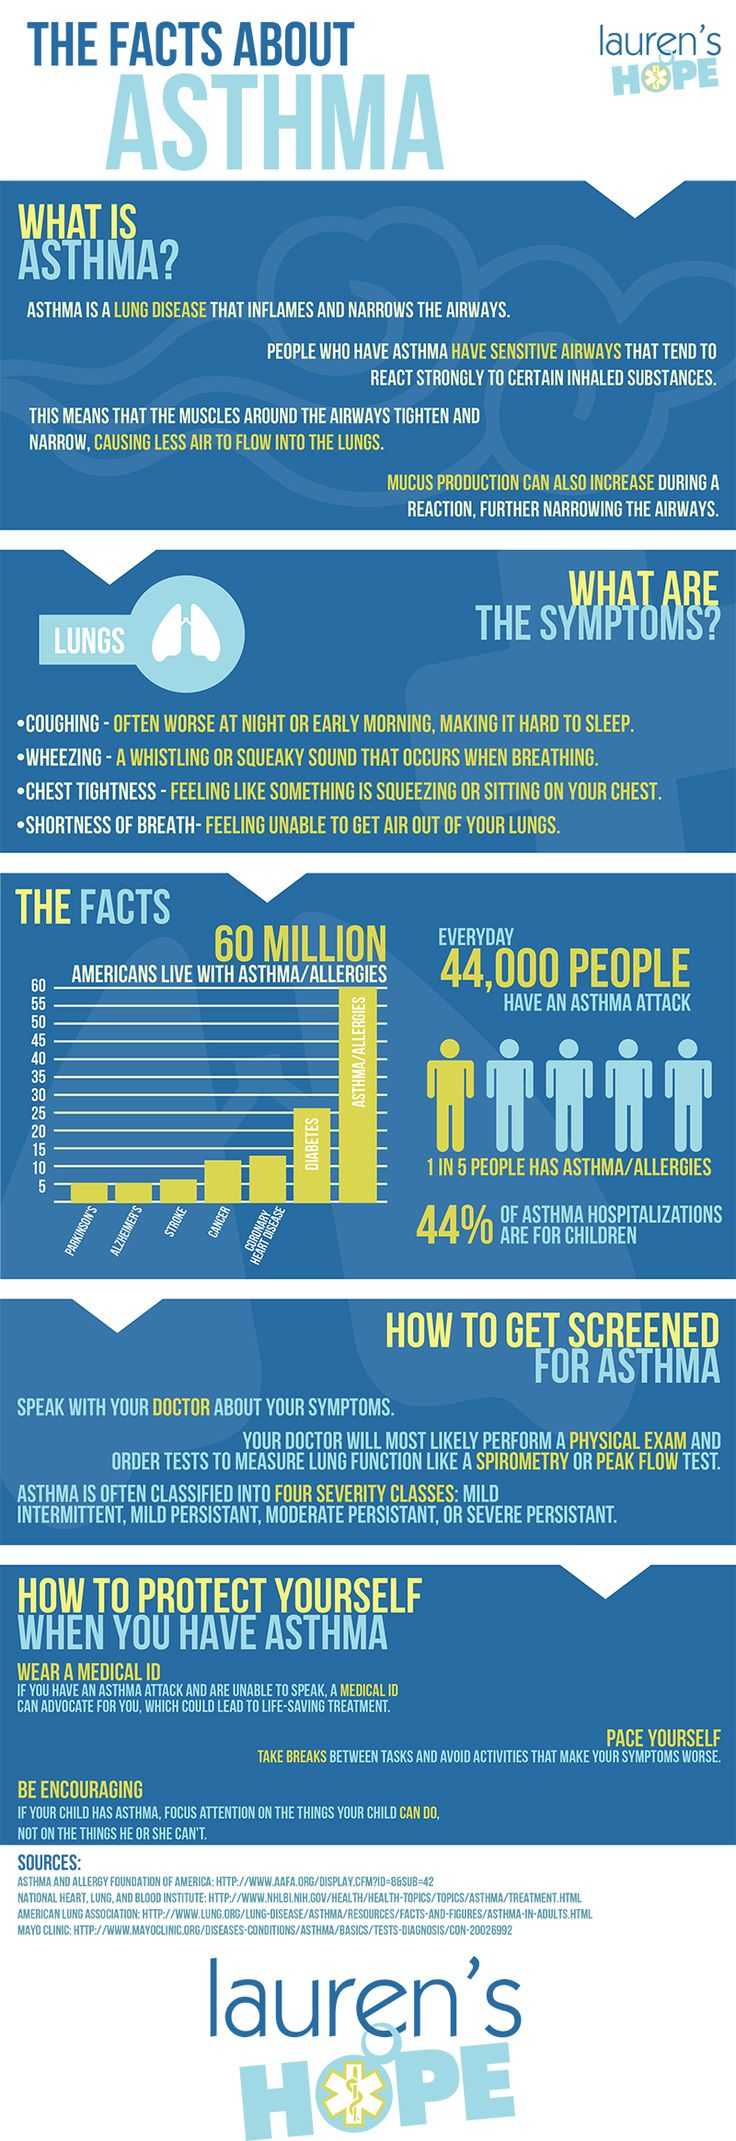 566 best asthma images on Pinterest